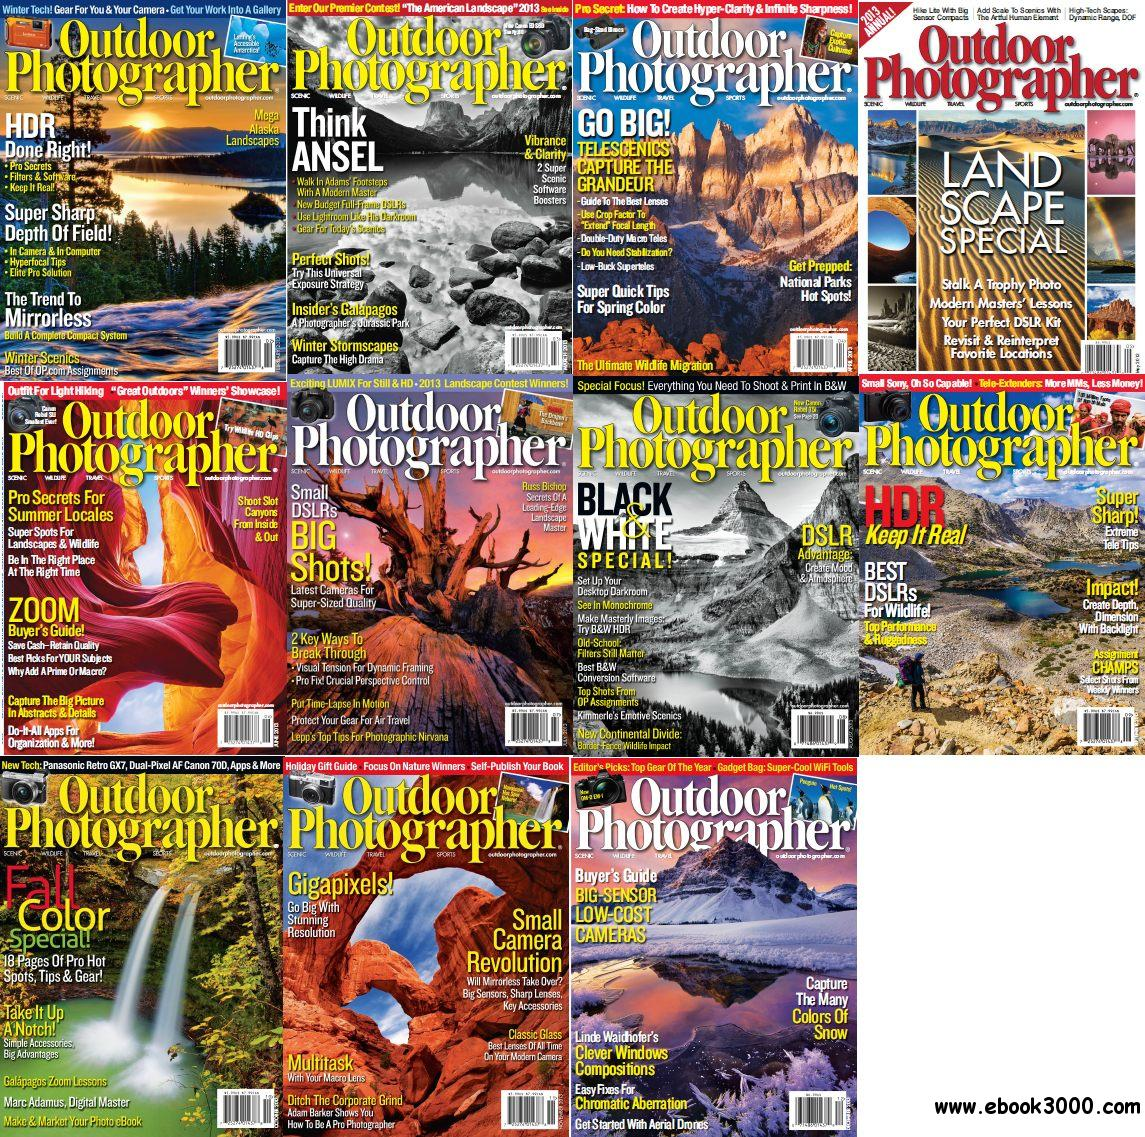 Outdoor Photographer - Full Year 2013 Issues Collection free download